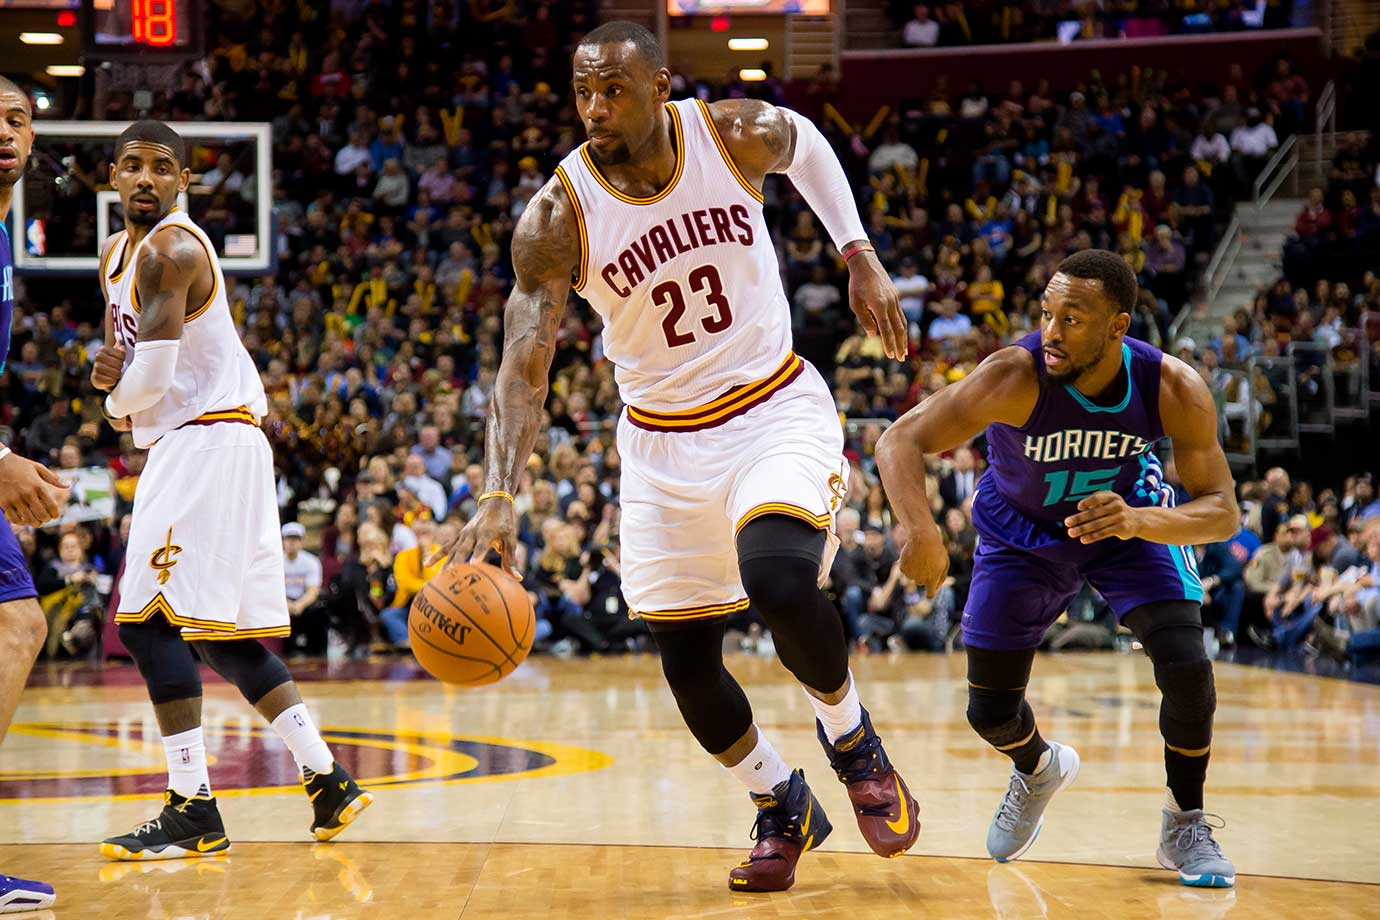 LeBron James drives around Kemba Walker of the Charlotte Hornets.